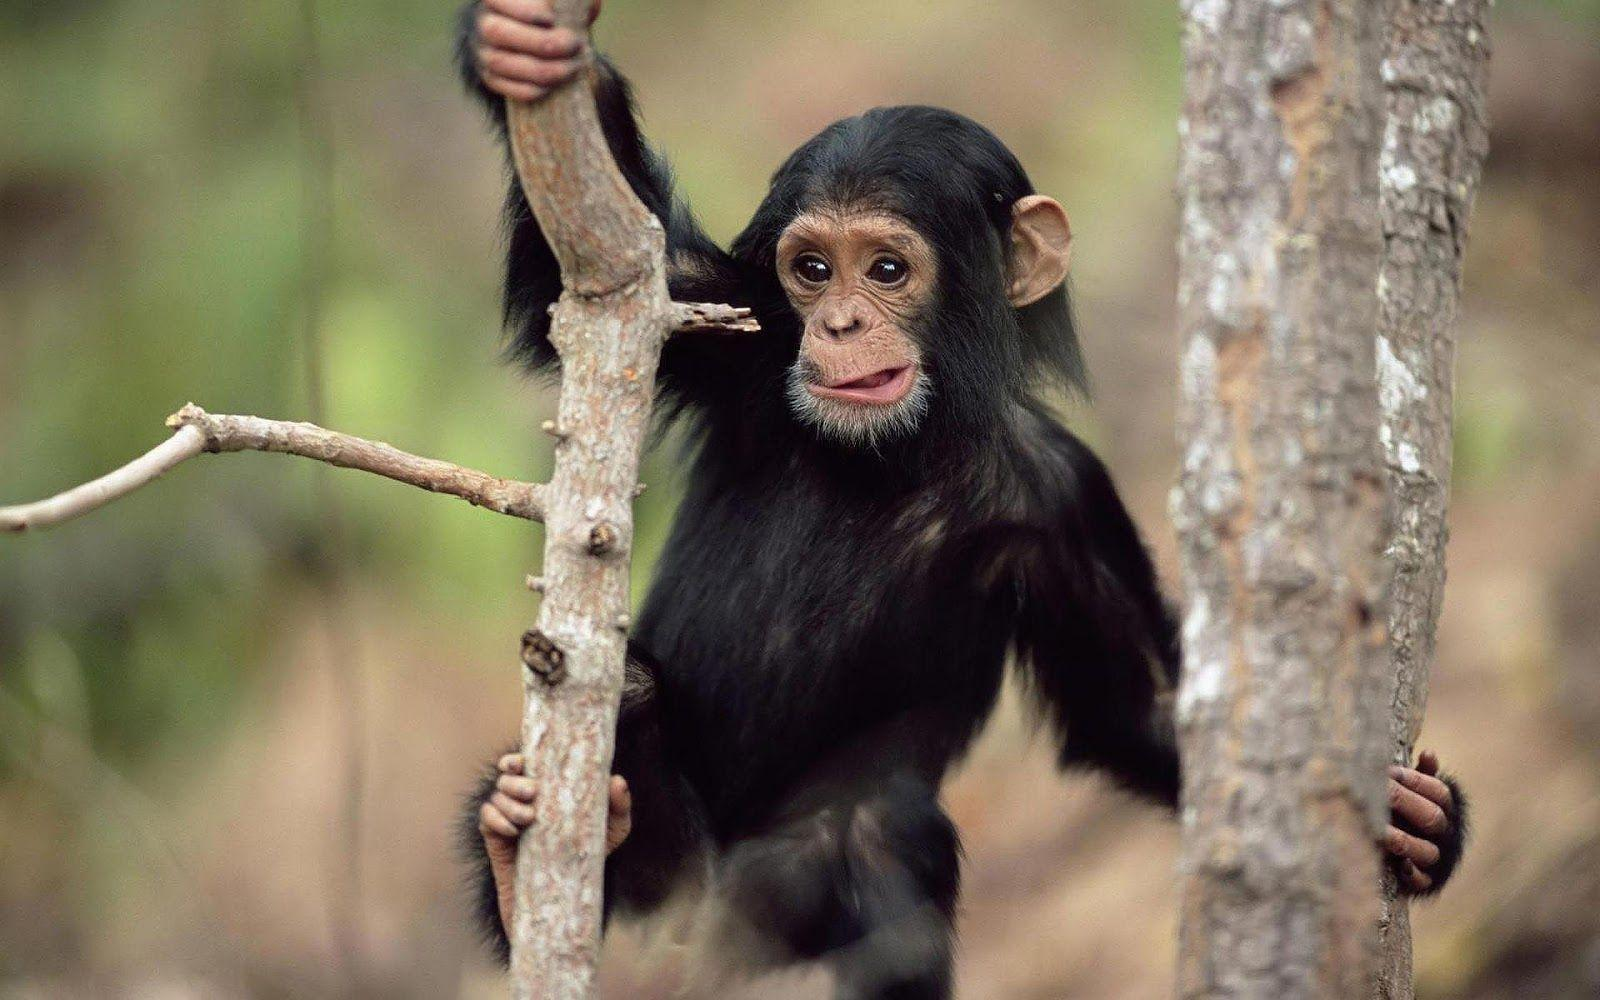 Monkey Wallpapers Pictures| HD Wallpapers ,Backgrounds ,Photos ...